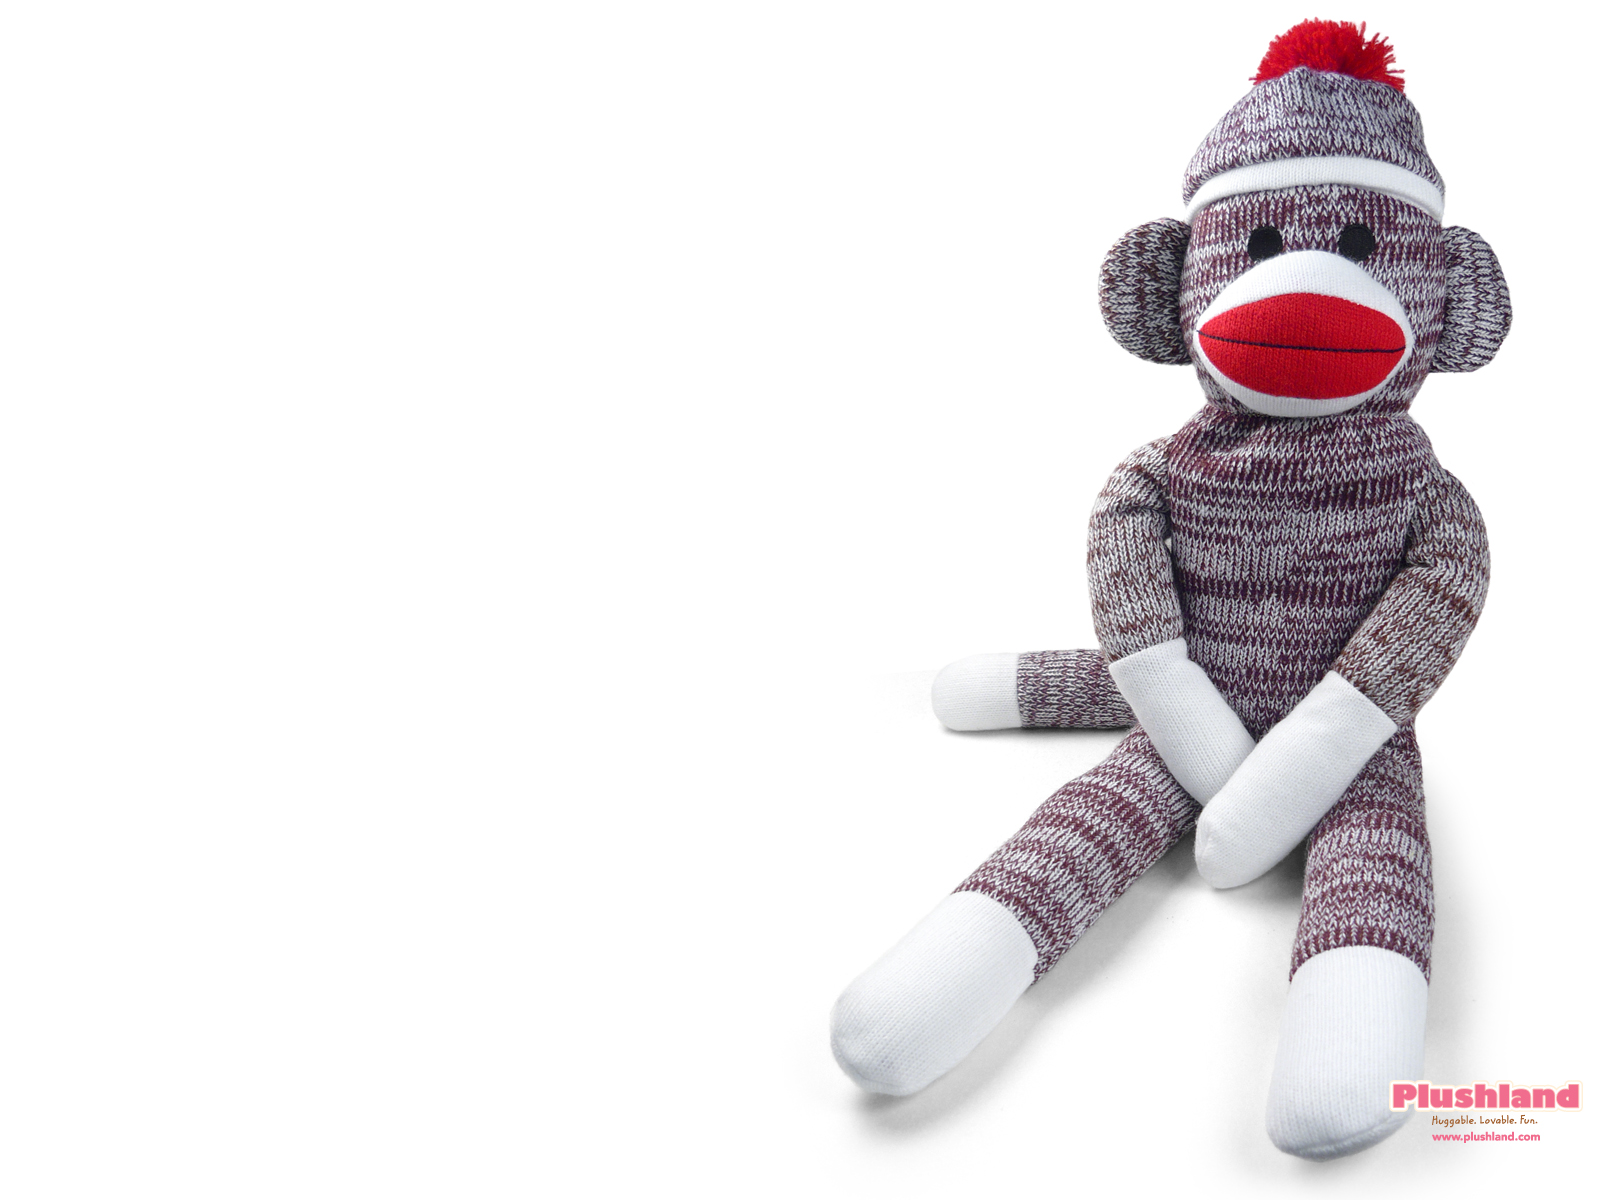 Sock Monkey Wallpapers Wallpapers - desktopbackground.org